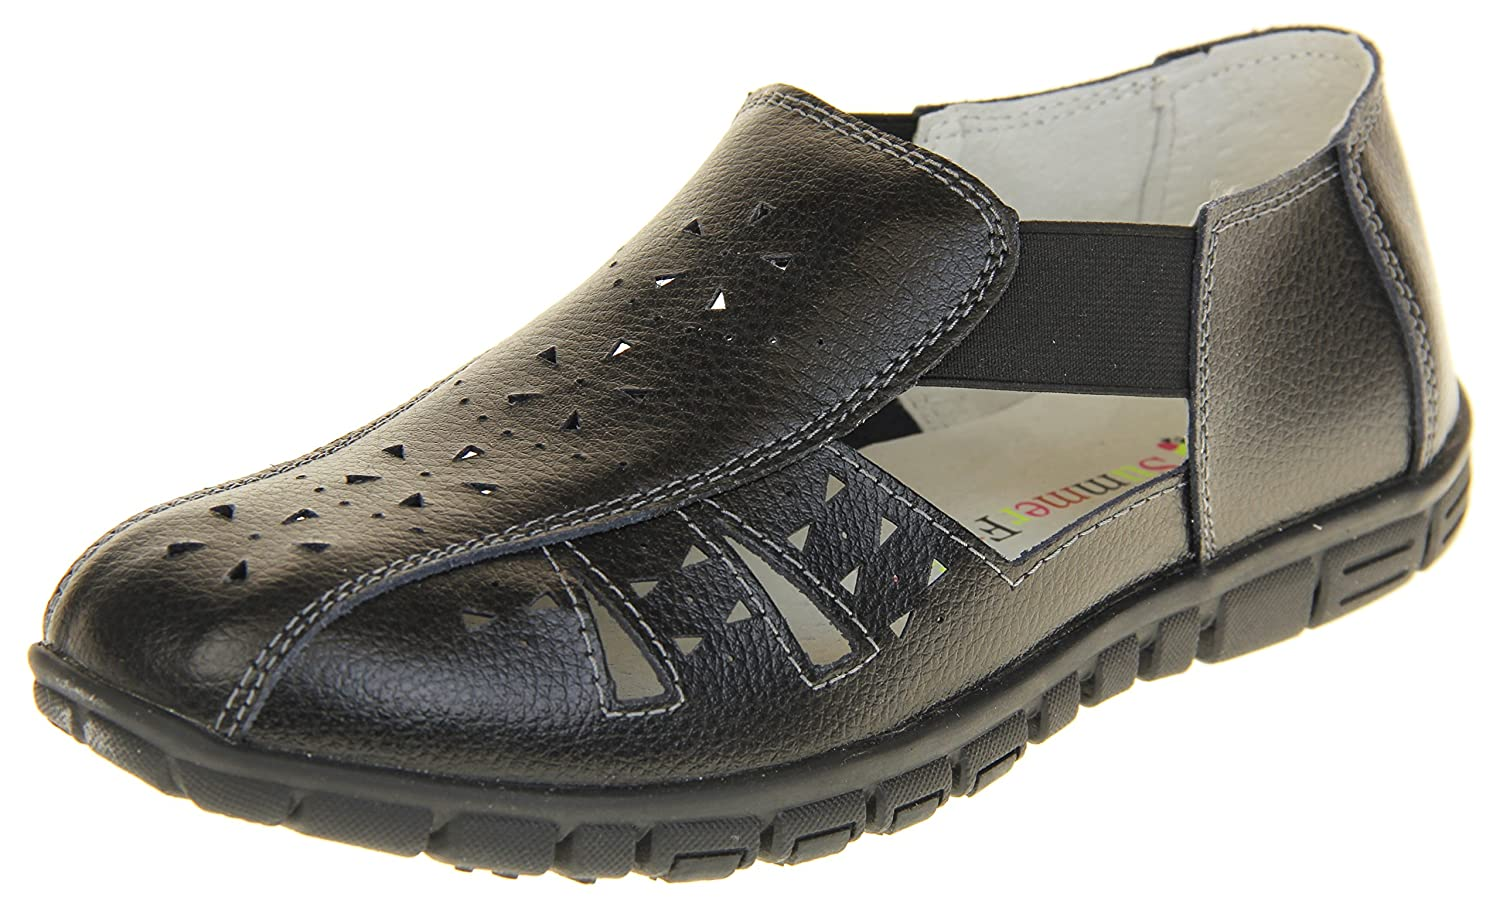 Coolers Womens Leather Wide Fit EEE Sandals Shoes B07D6RBRZ6 7 B(M) US|Black